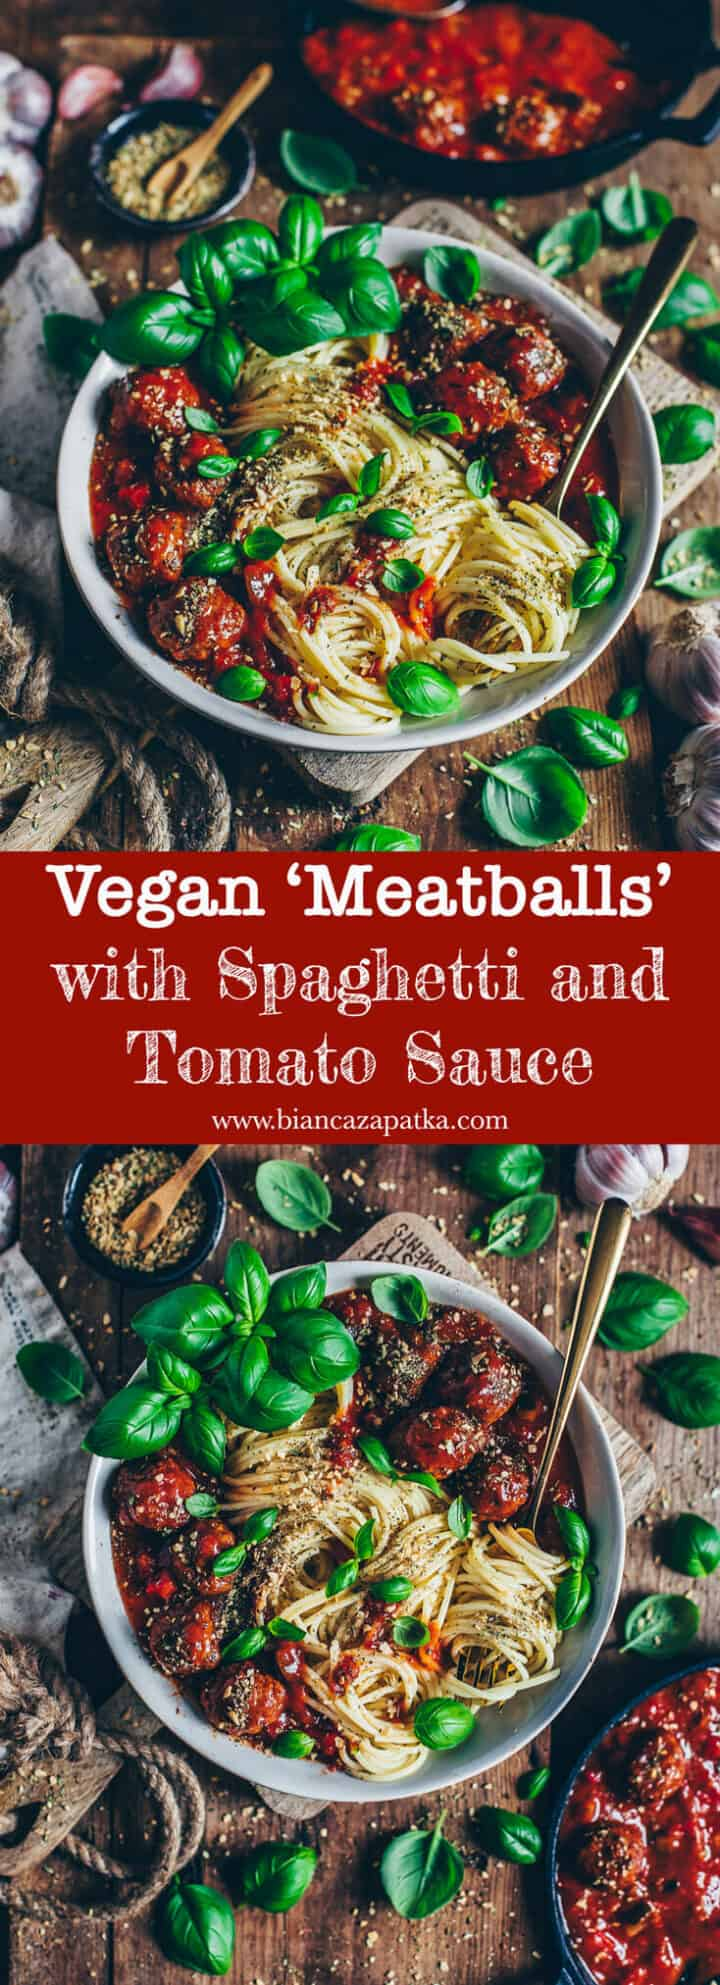 These vegan and healthy'meatballs' made of beans and combined with a spicy tomato sauce + pasta are a perfect lunch or dinner! This dish is quick & easy to make and a delicious plant-based alternative. Instead of balls, you can also form patties for burger or enjoy them just as a snack.